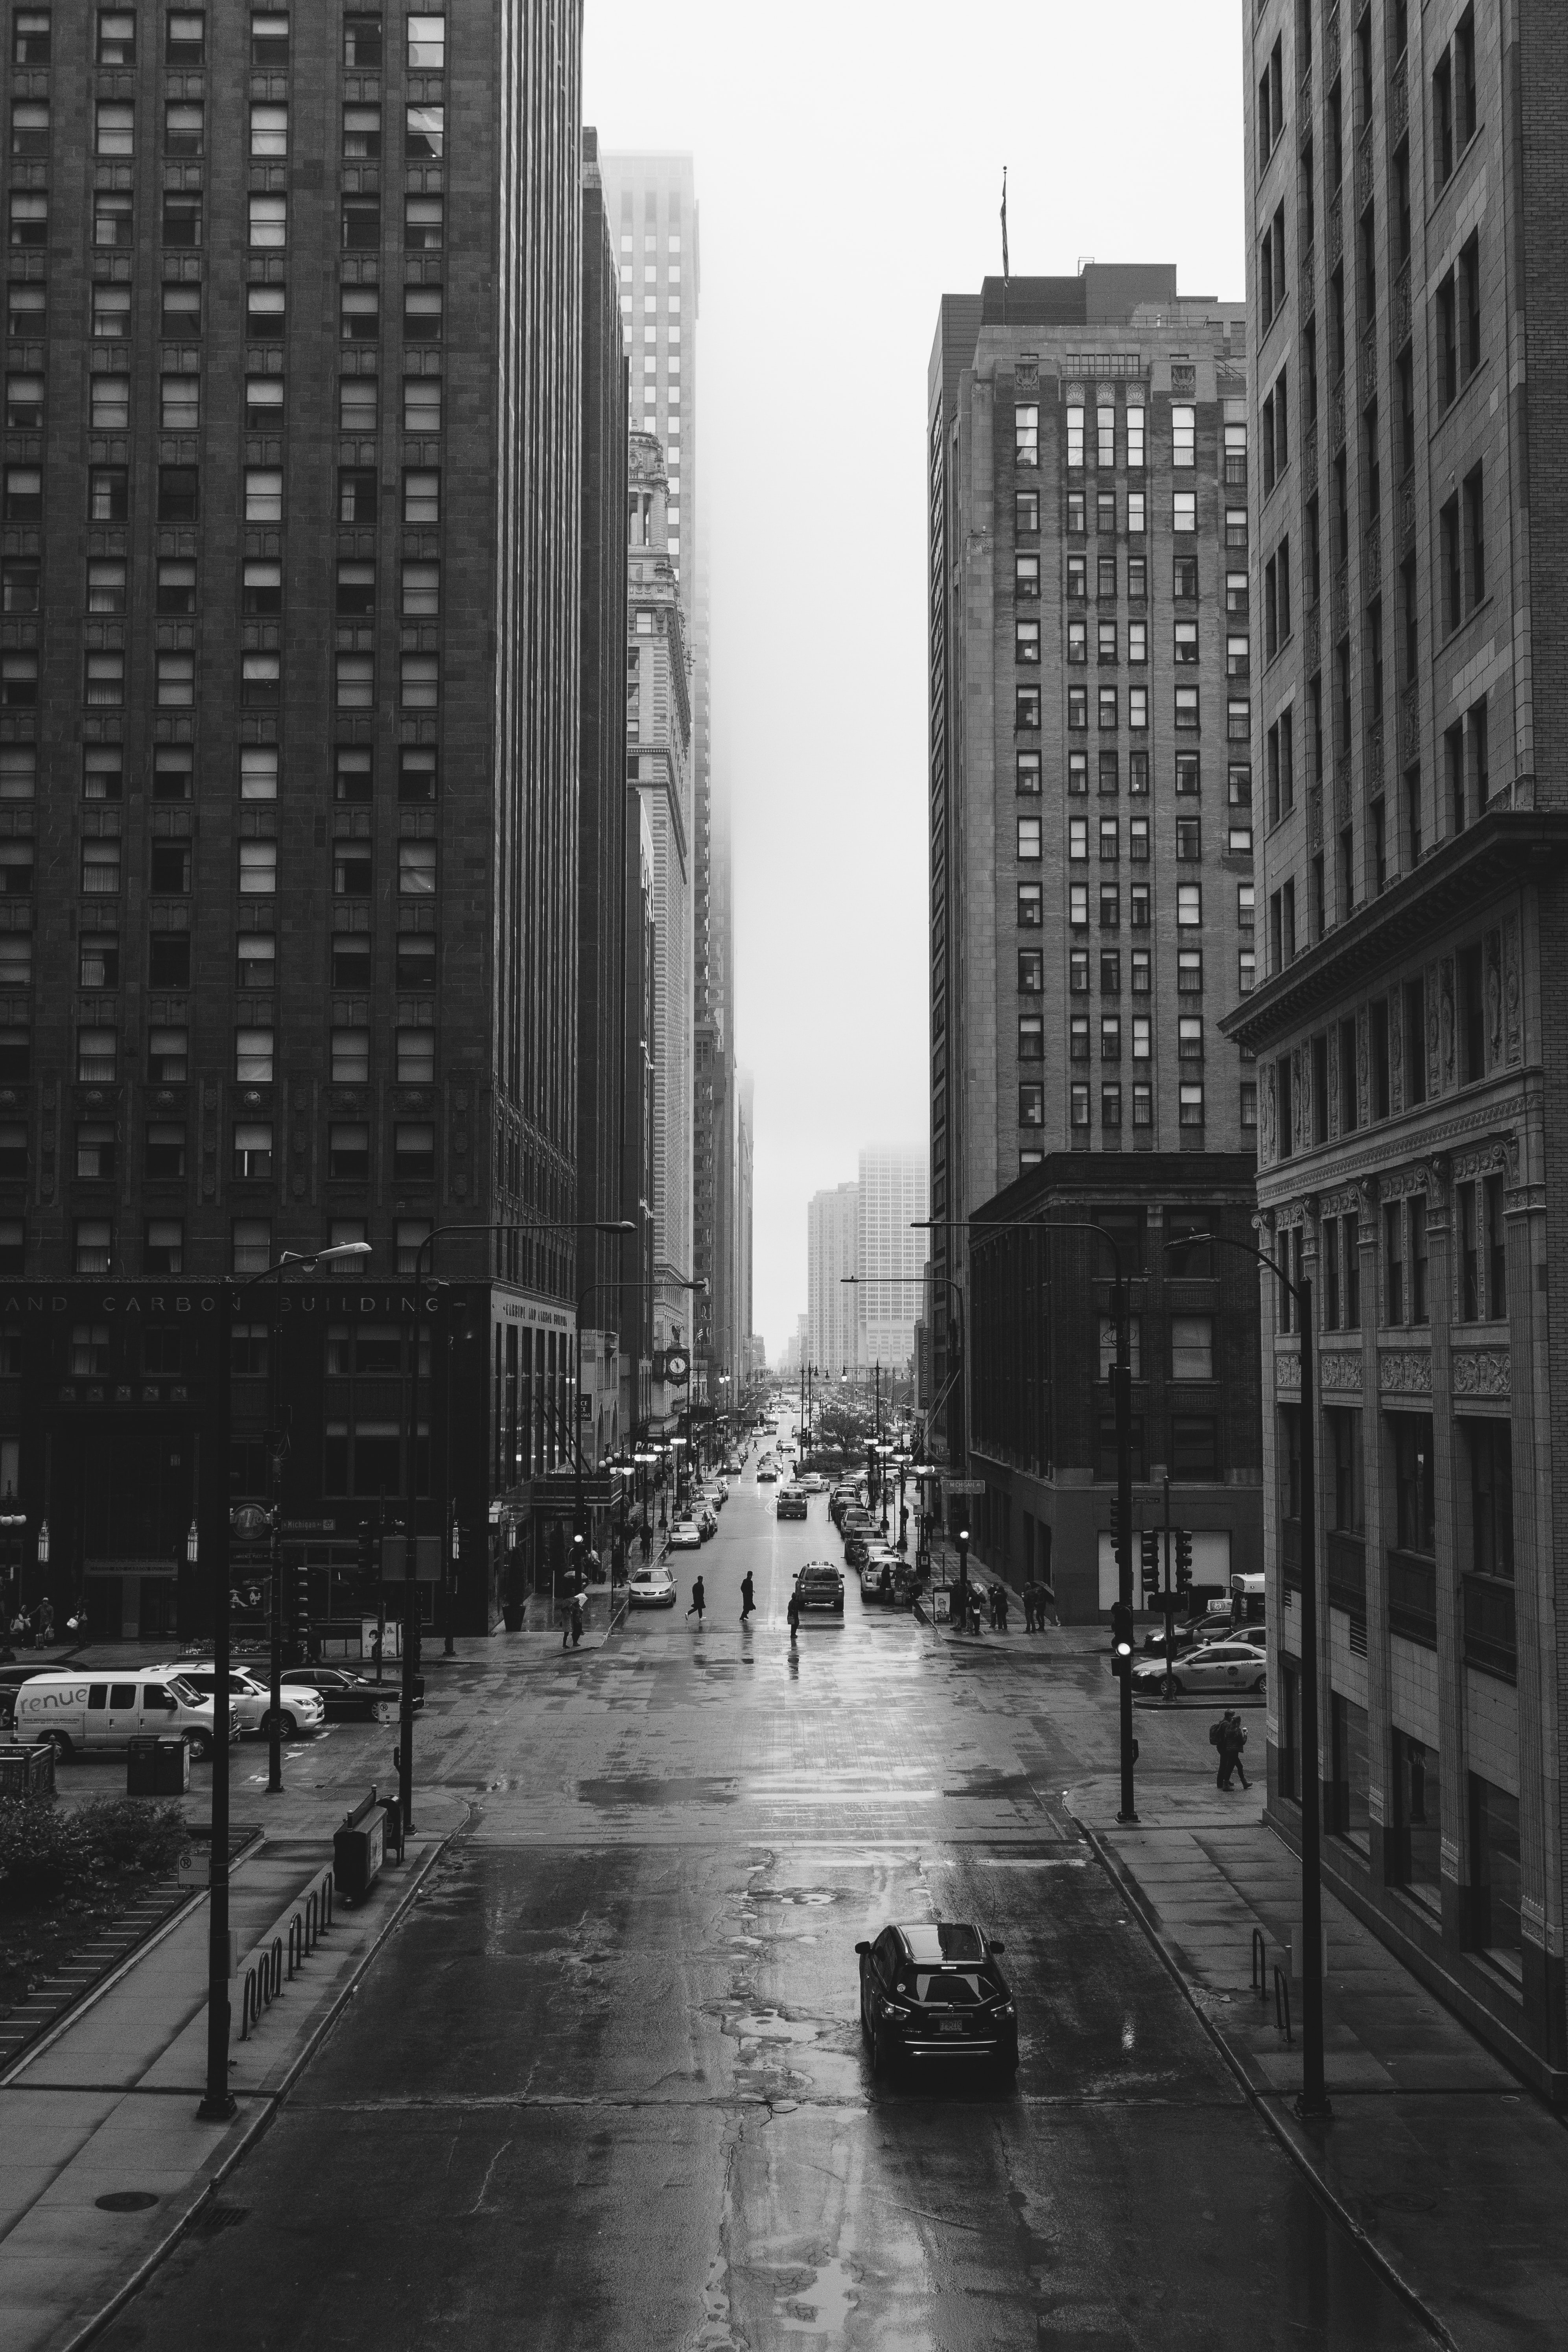 A black-and-white shot of the streets of Chicago on a rainy day